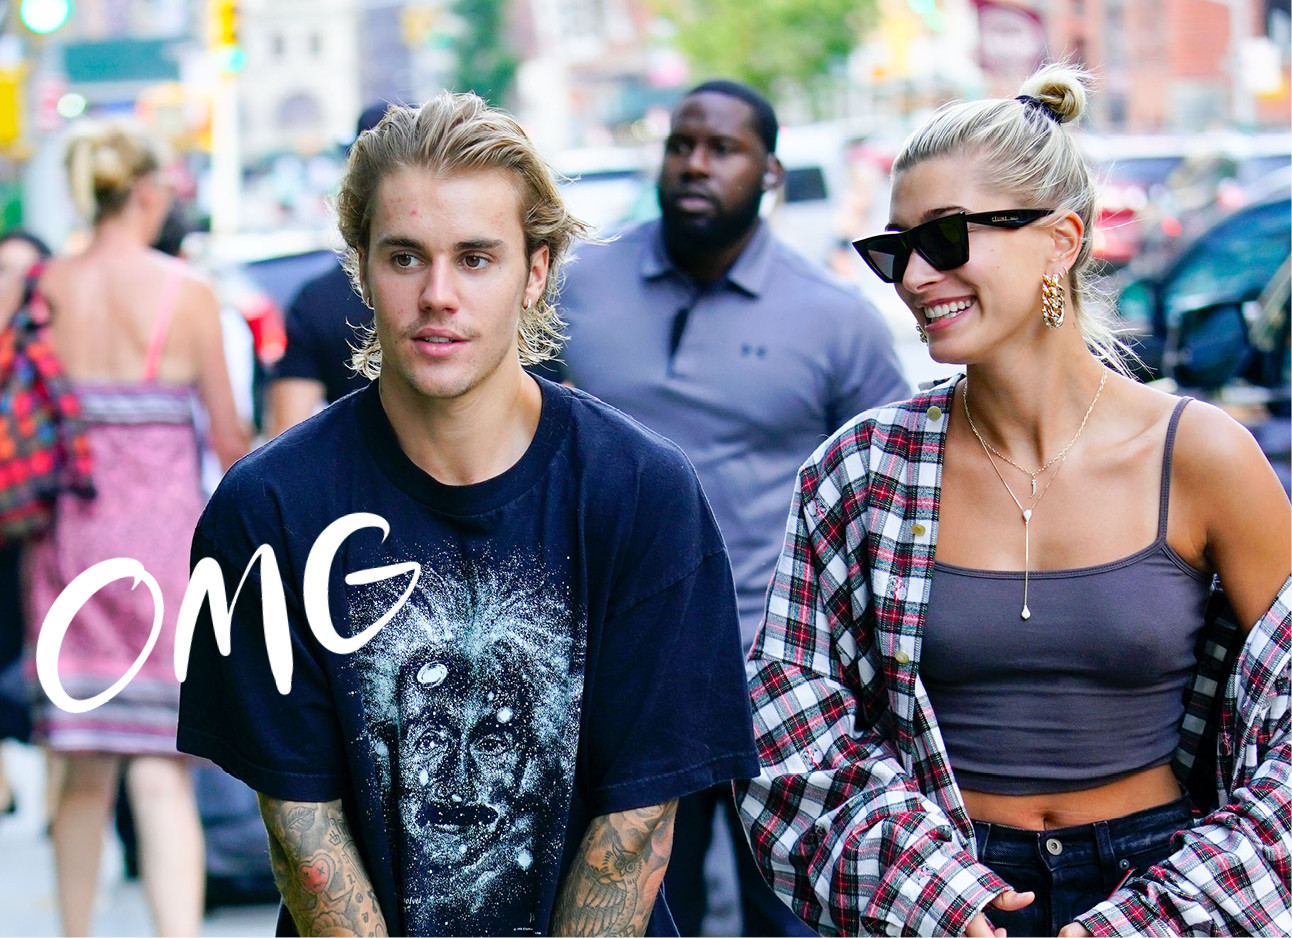 justin bieber wearing t-shirt haily baldwin bieber in grey top and blouse walking across the street